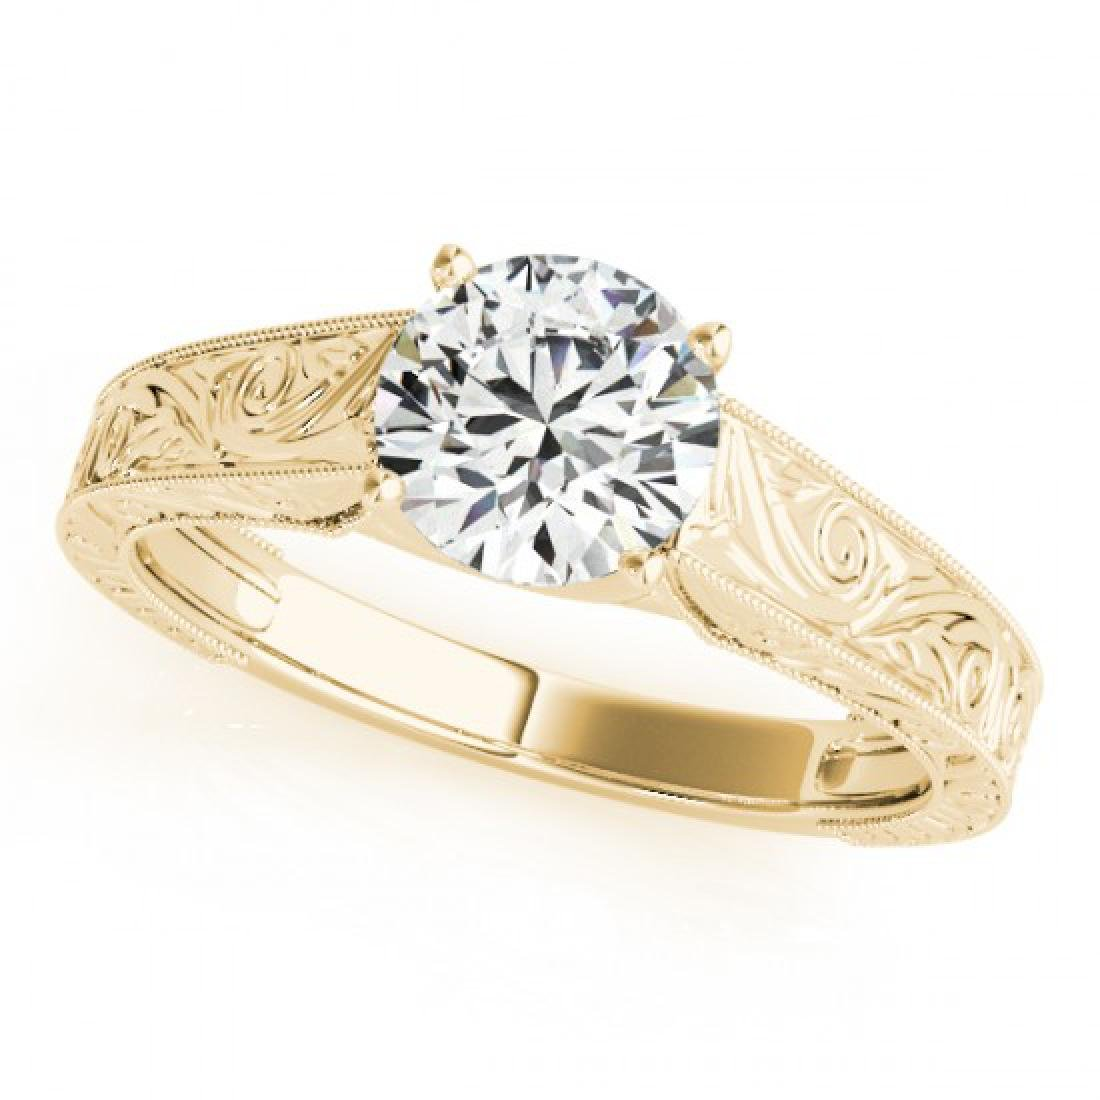 1.5 CTW Certified VS/SI Diamond Solitaire Ring 14K